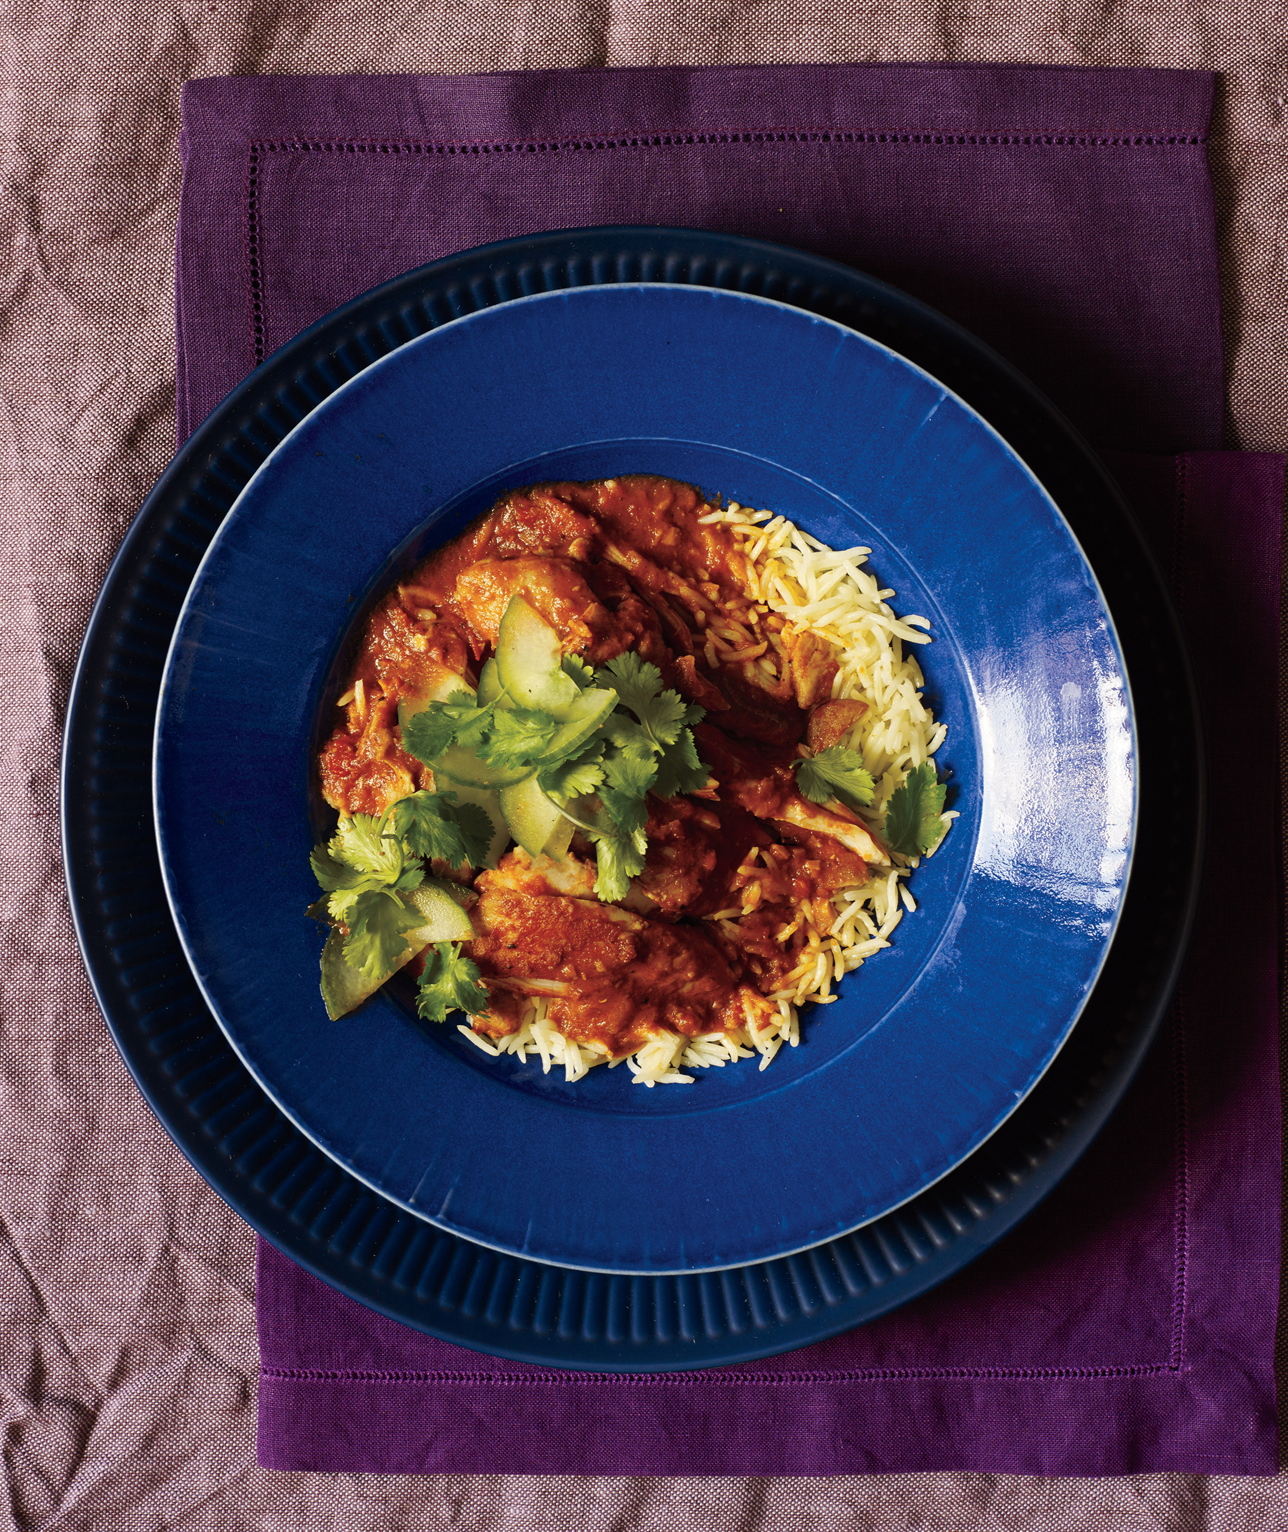 "real simple recipes ""clean eating"" expert, diane welland, selects simple weeknight recipes from the cooking light magazine collection that work for those who are trying."